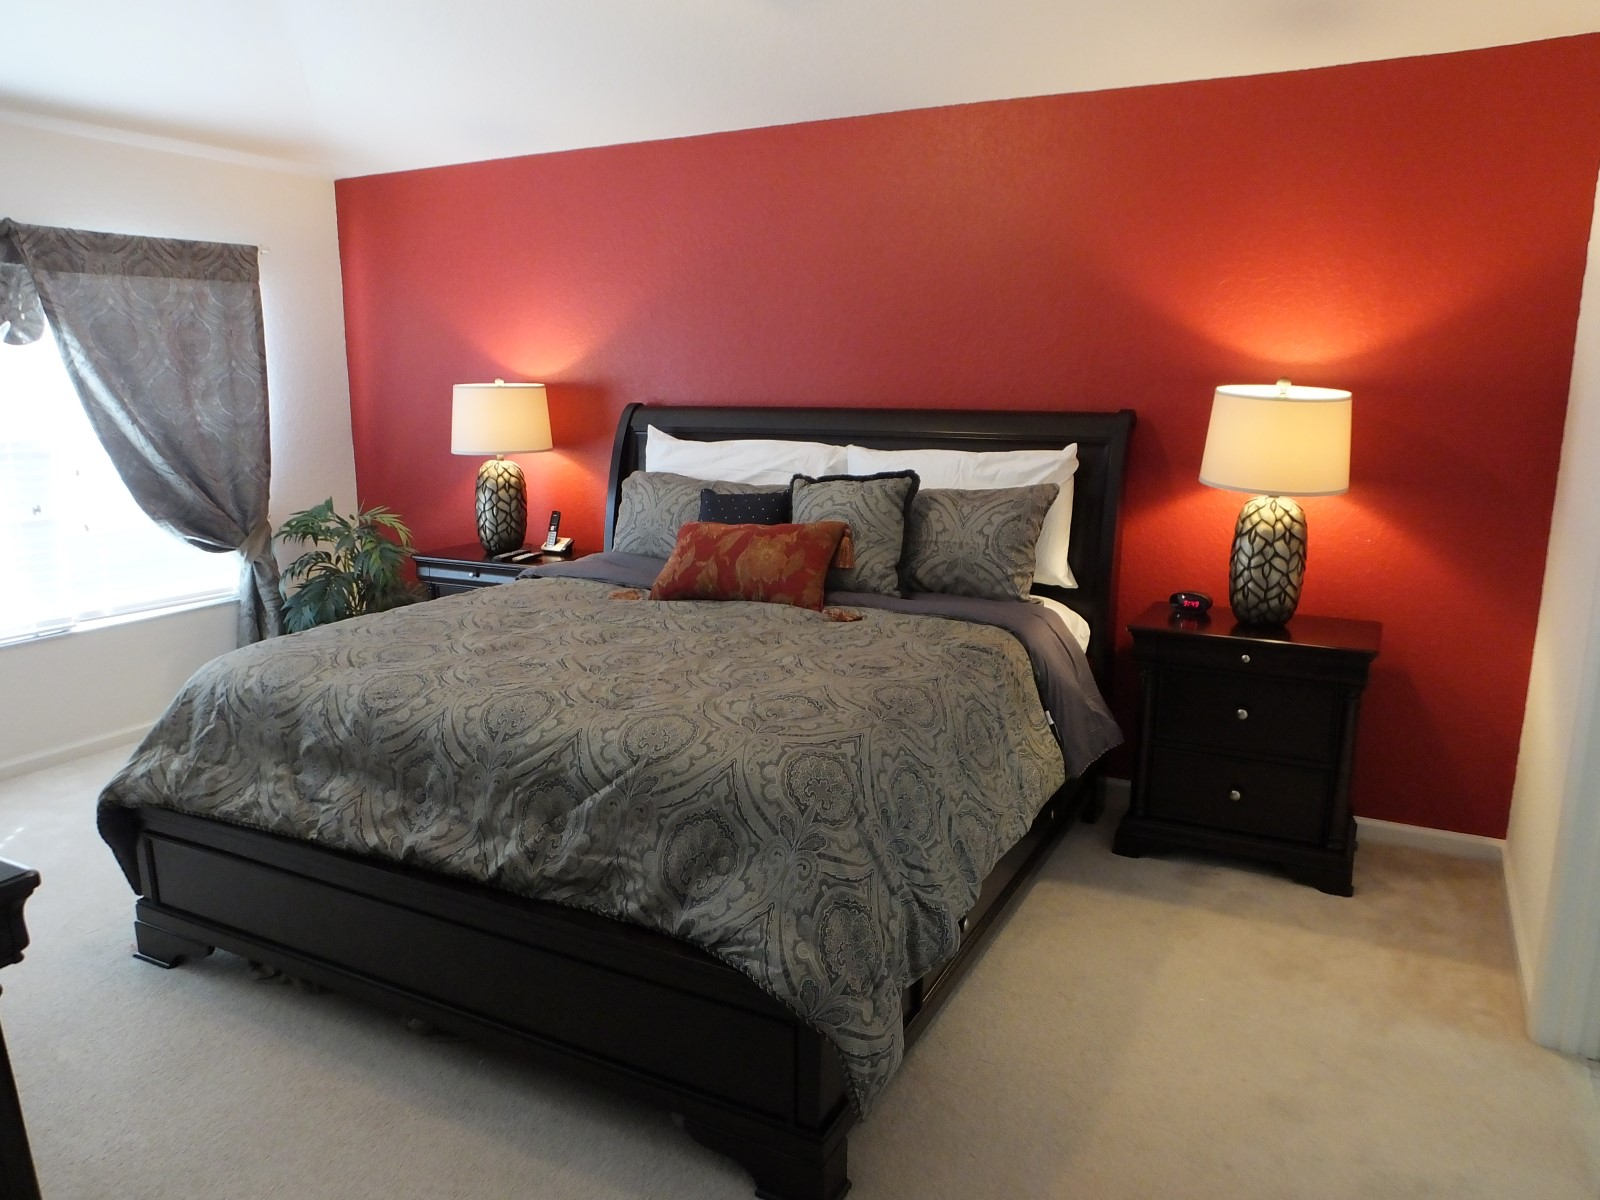 Disney At Windsor Hills Amenities Our 6 Bedroom Vacation Home Is Fully Loaded Of Fun And